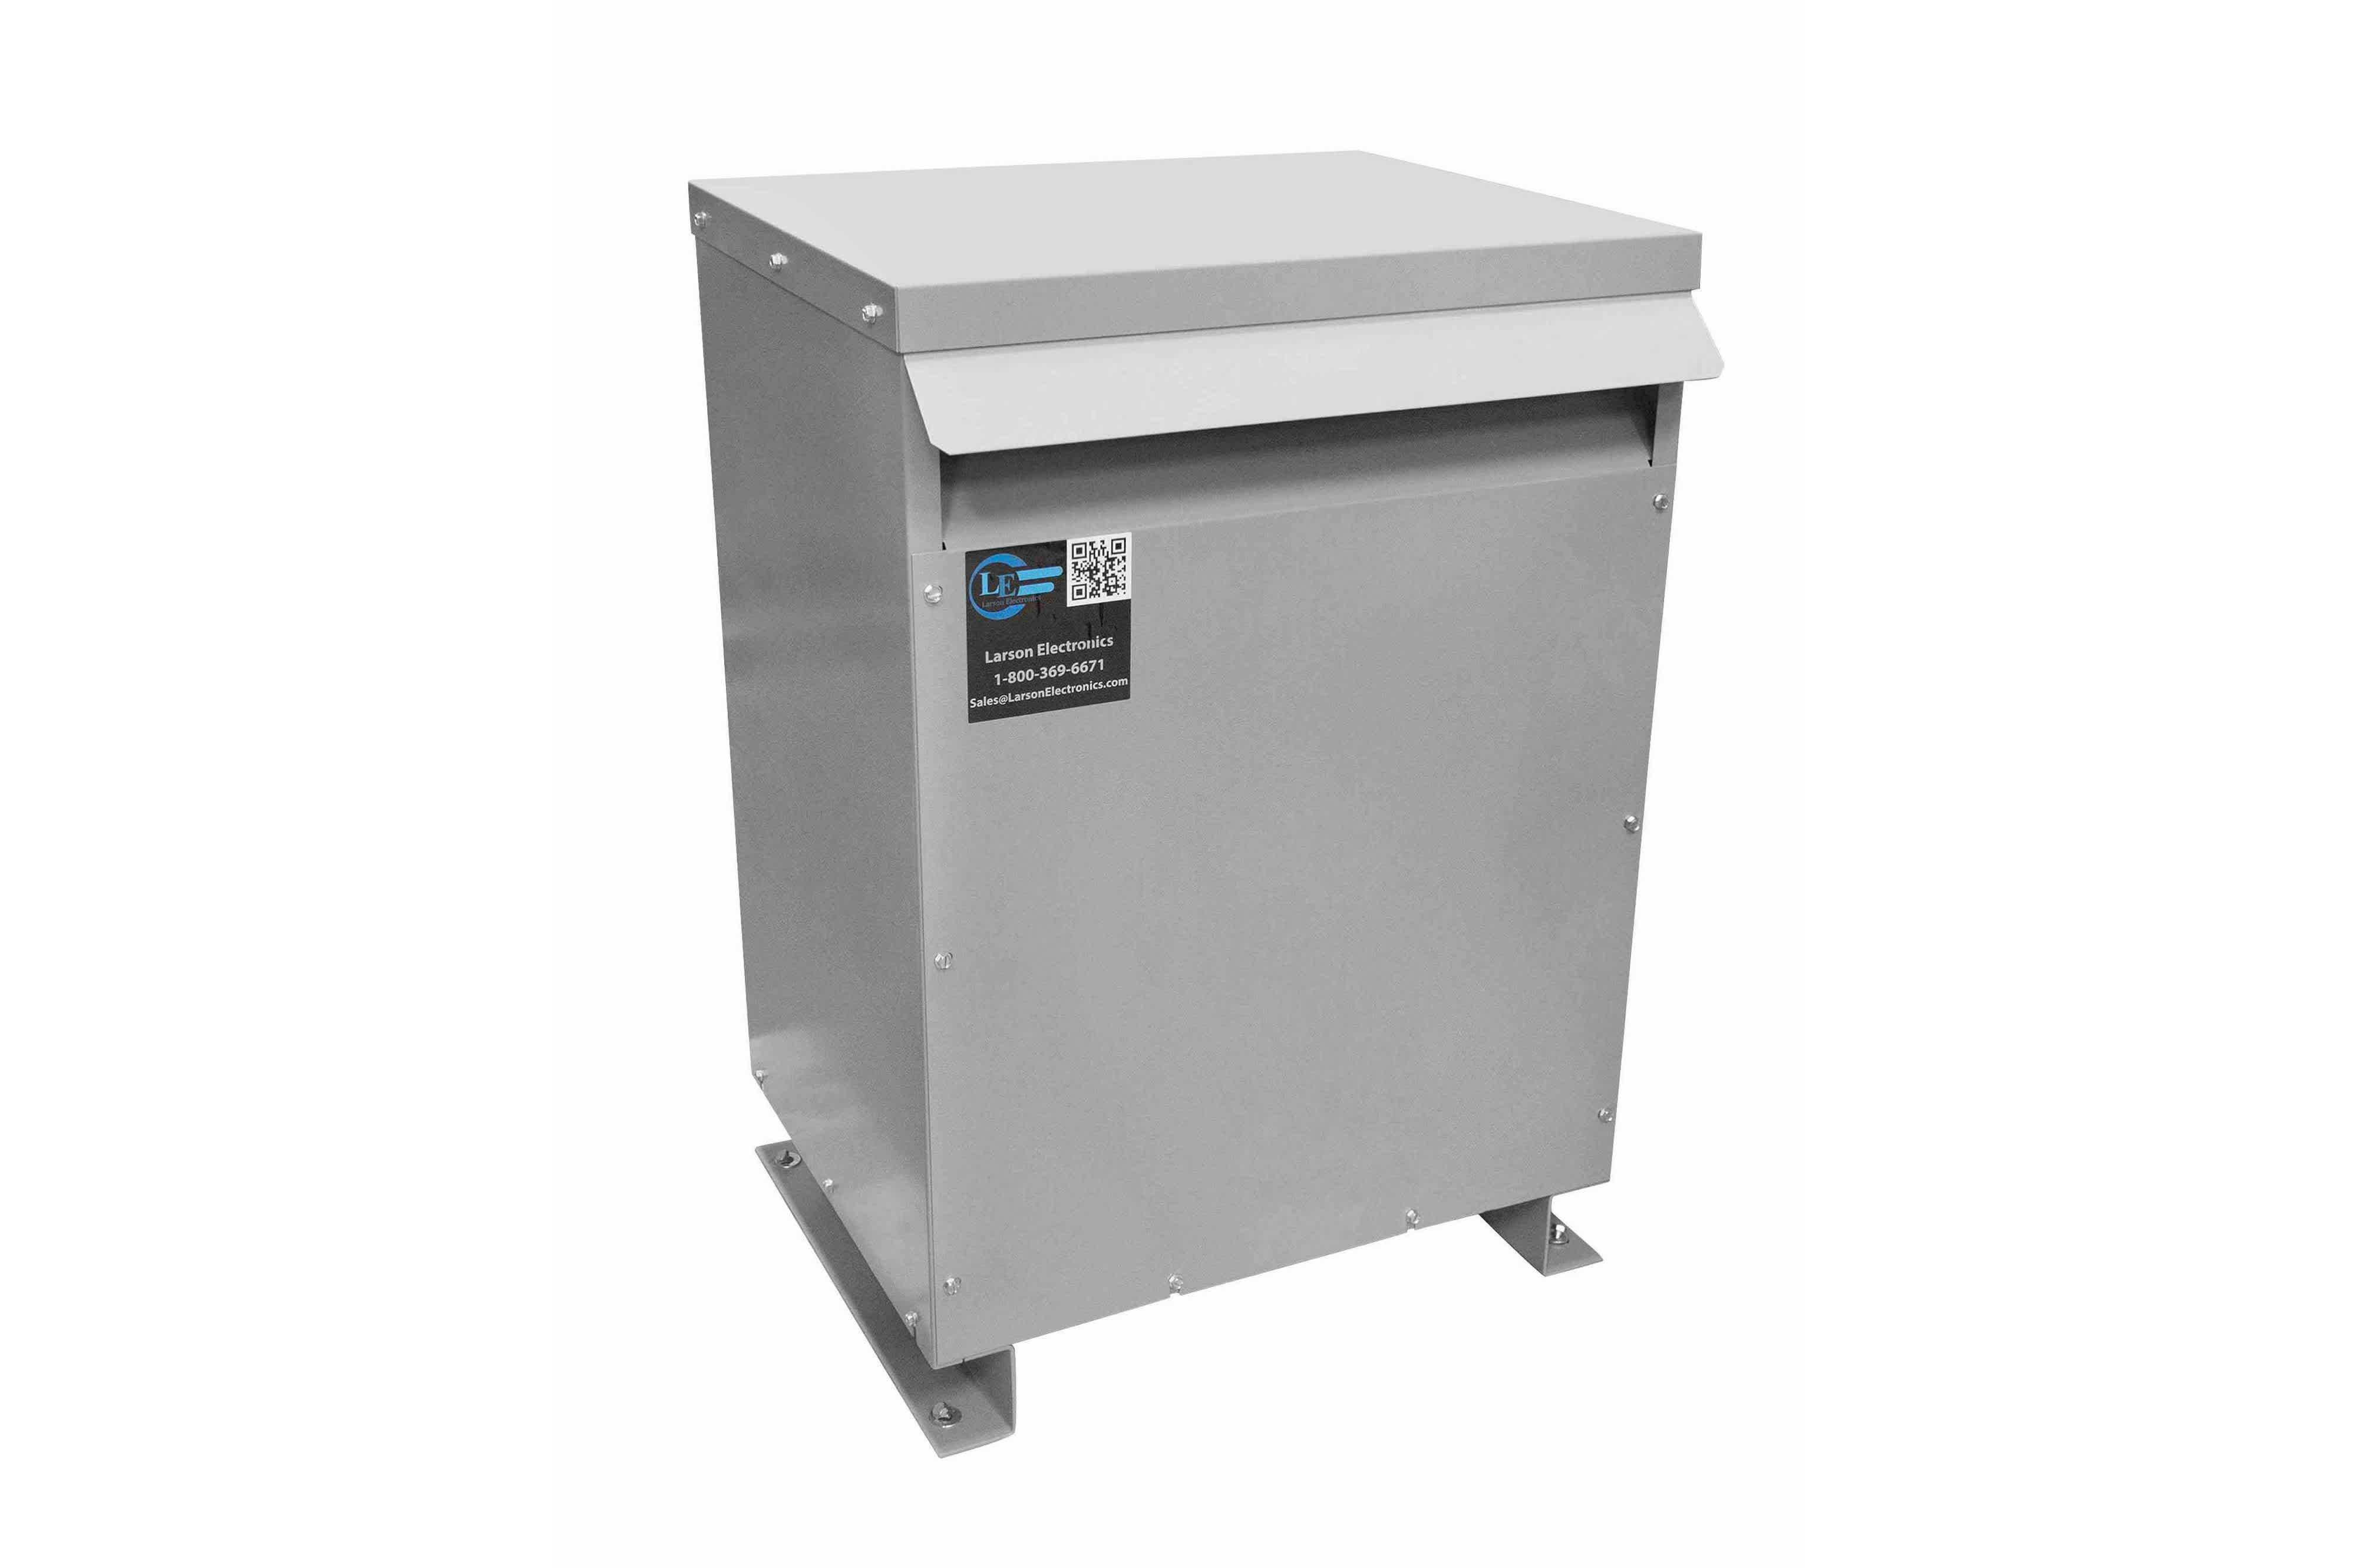 200 kVA 3PH DOE Transformer, 460V Delta Primary, 380Y/220 Wye-N Secondary, N3R, Ventilated, 60 Hz